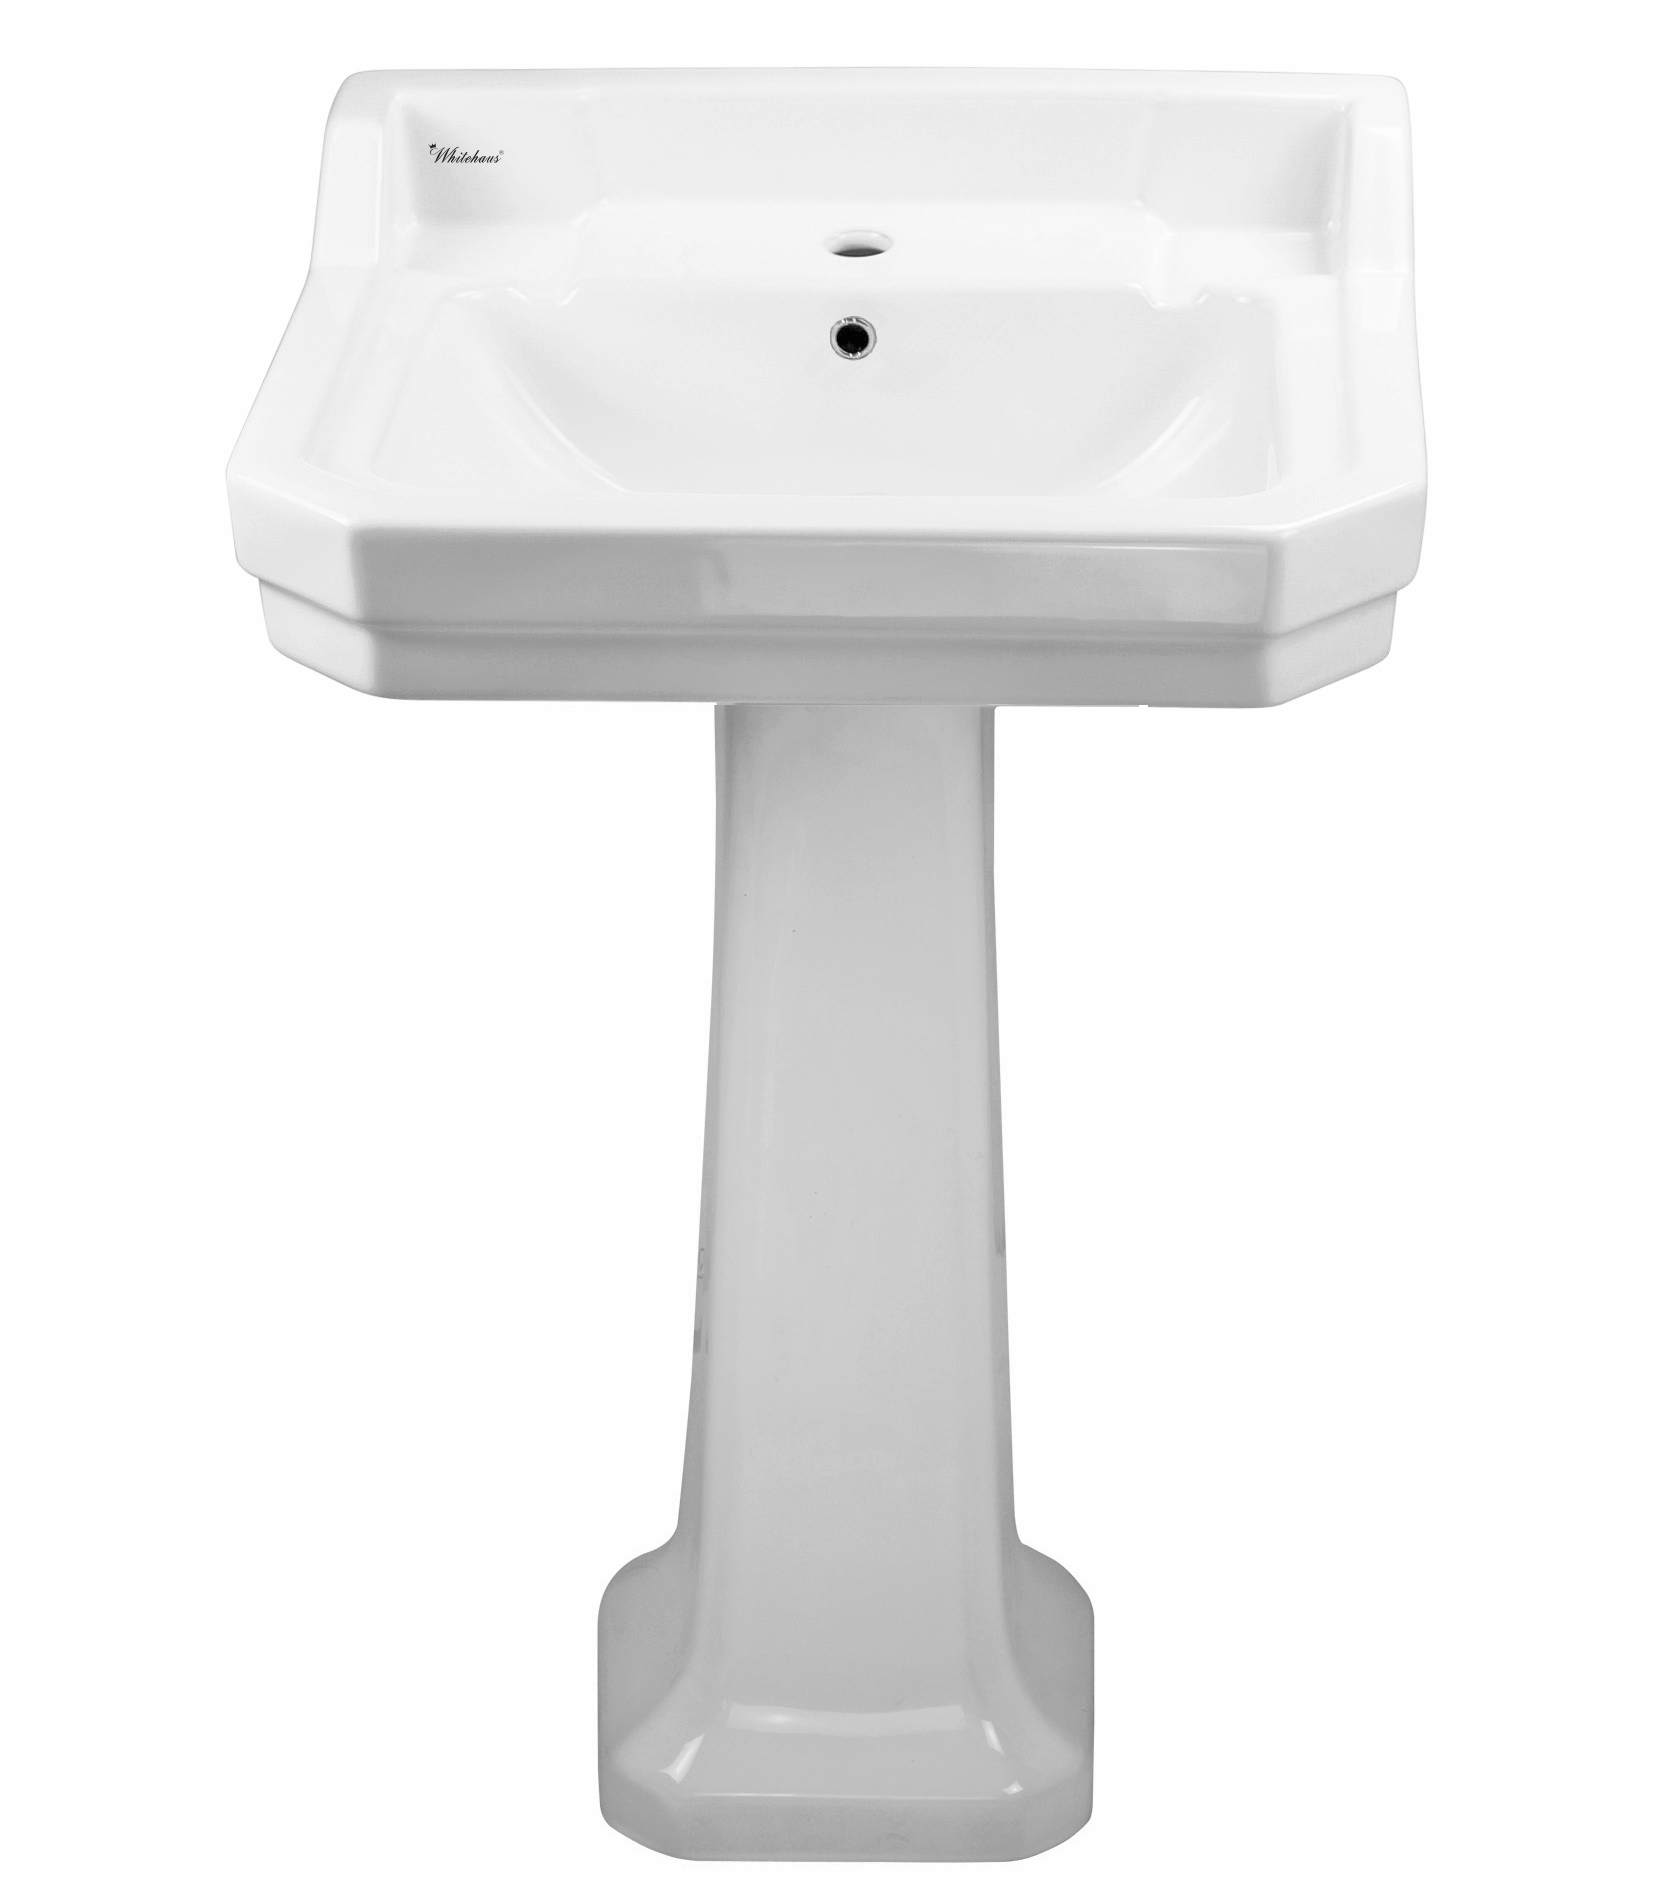 Isabella Collection Traditional Pedestal with Integrated Rectangular Bowl, Backsplash, Dual Soap Ledges, Decorative Trim and Overflow